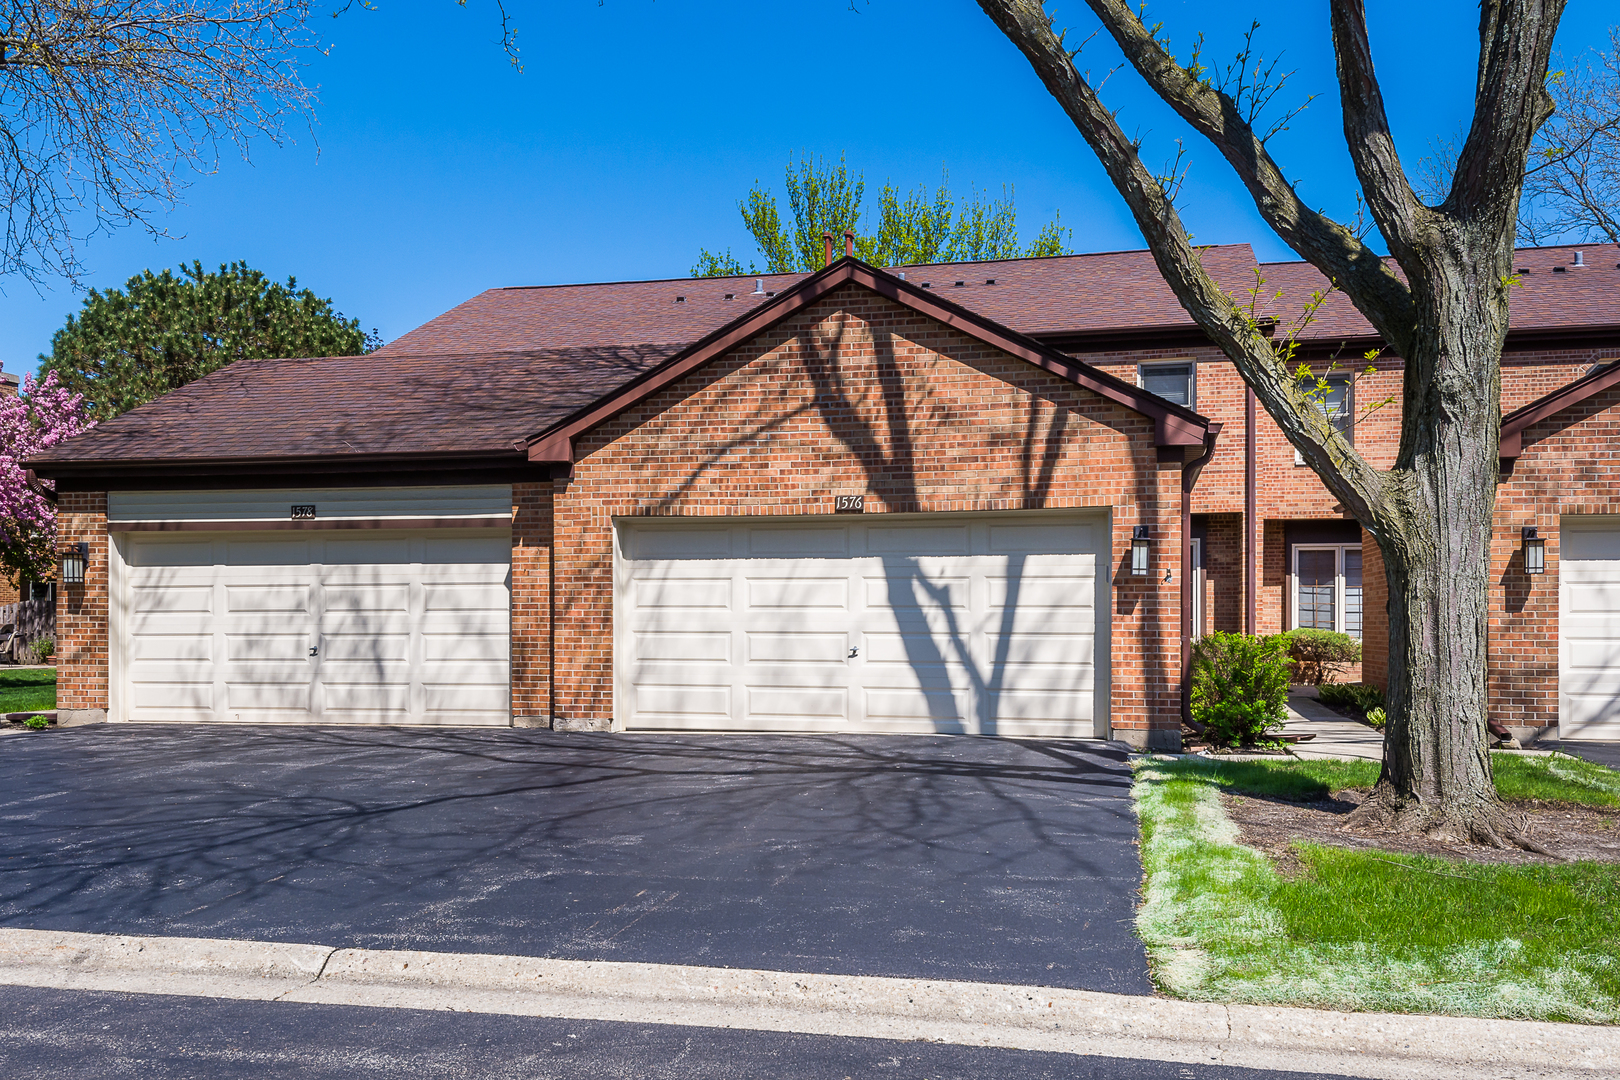 1576 Windsor Unit 1576 ,Arlington Heights, Illinois 60004